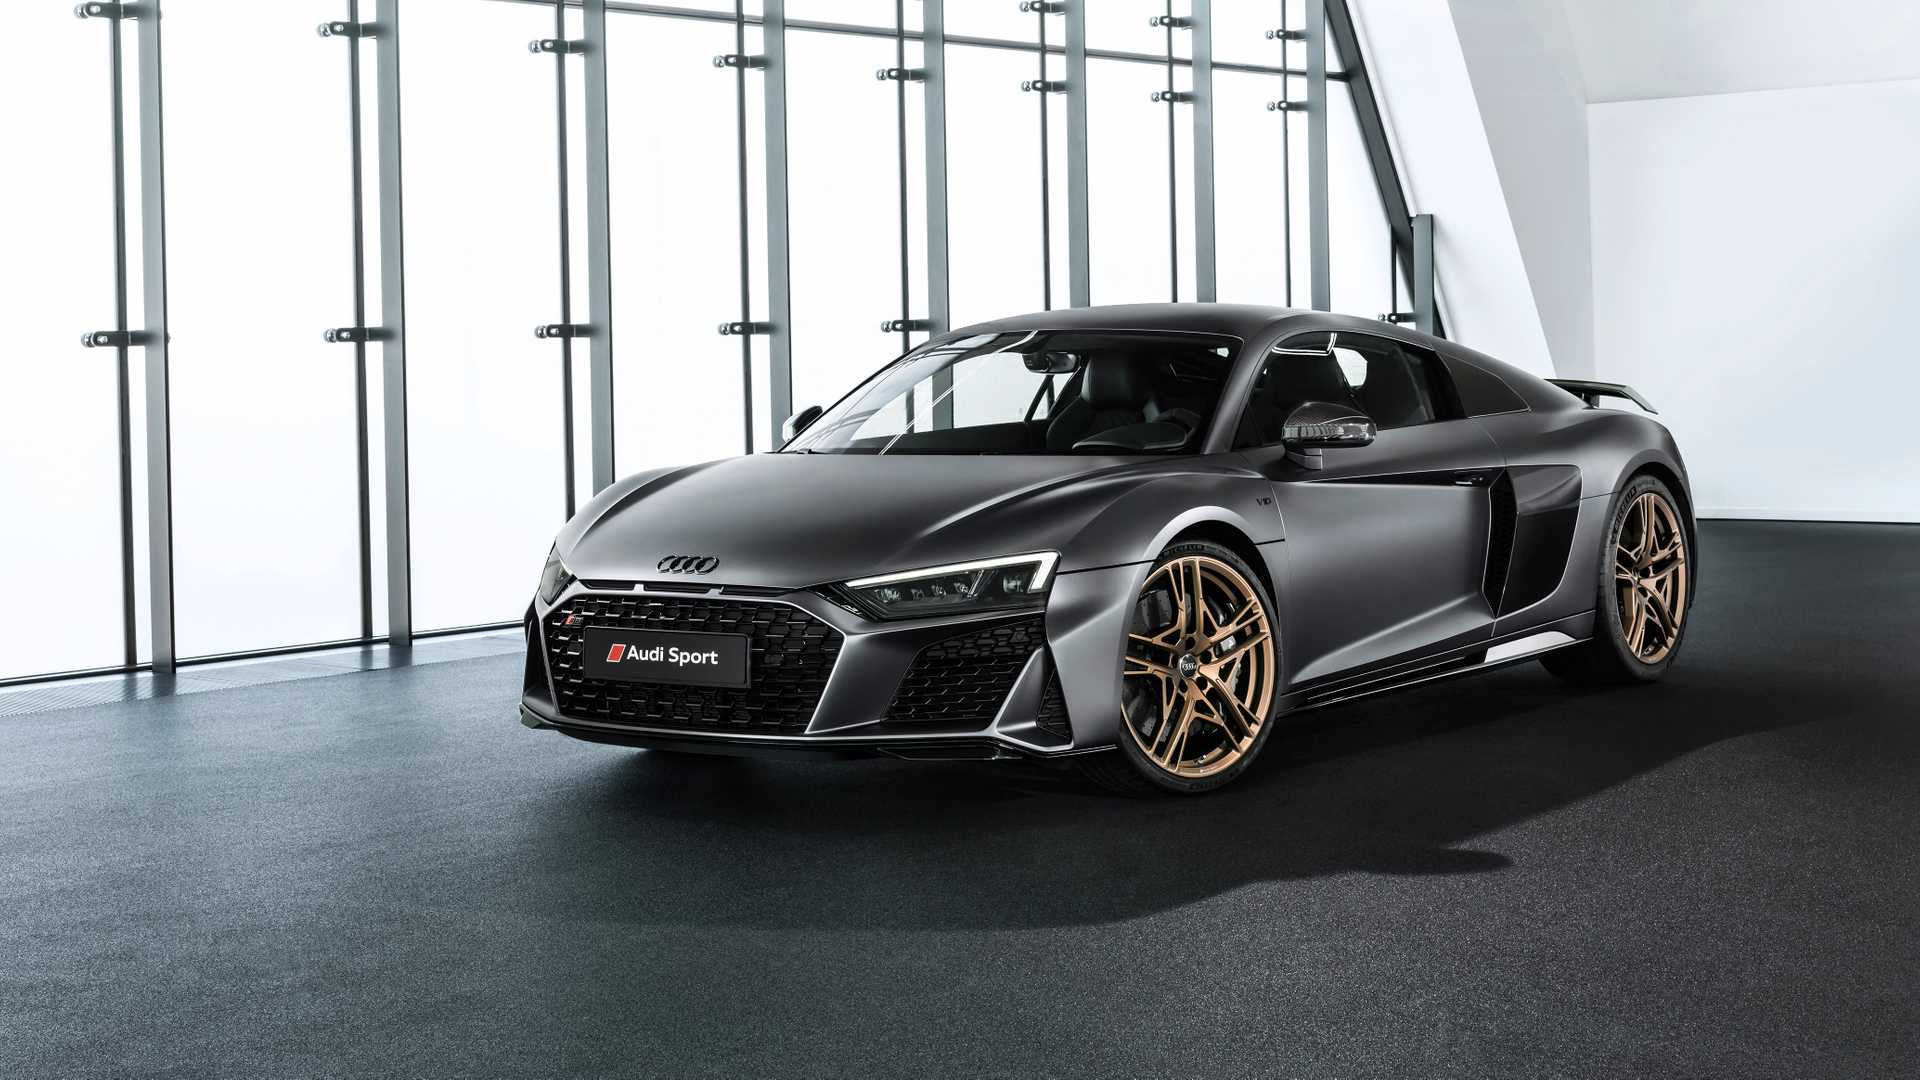 85 Gallery of 2020 Audi R8 For Sale Release by 2020 Audi R8 For Sale